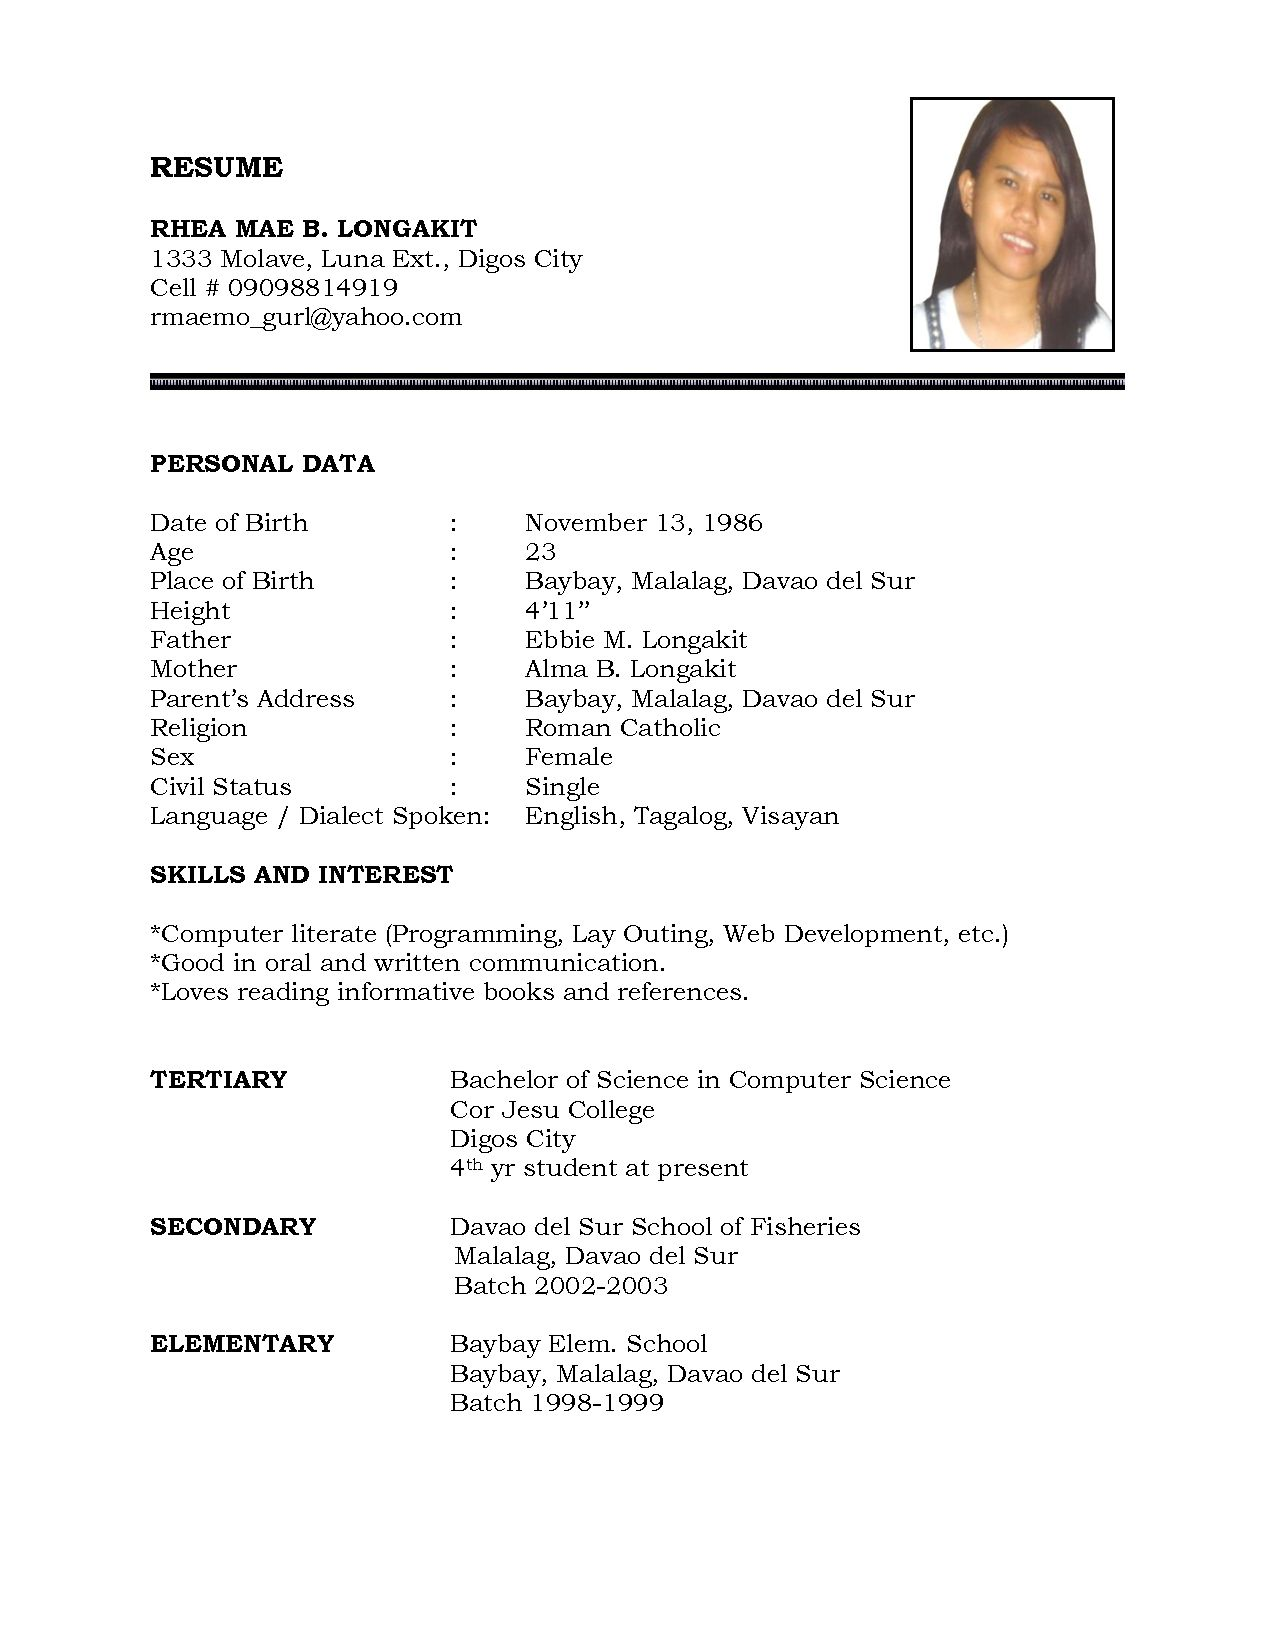 Sample Simple Resume Resume Sample Simple De9E2A60F The Simple Format Of Resume For Job